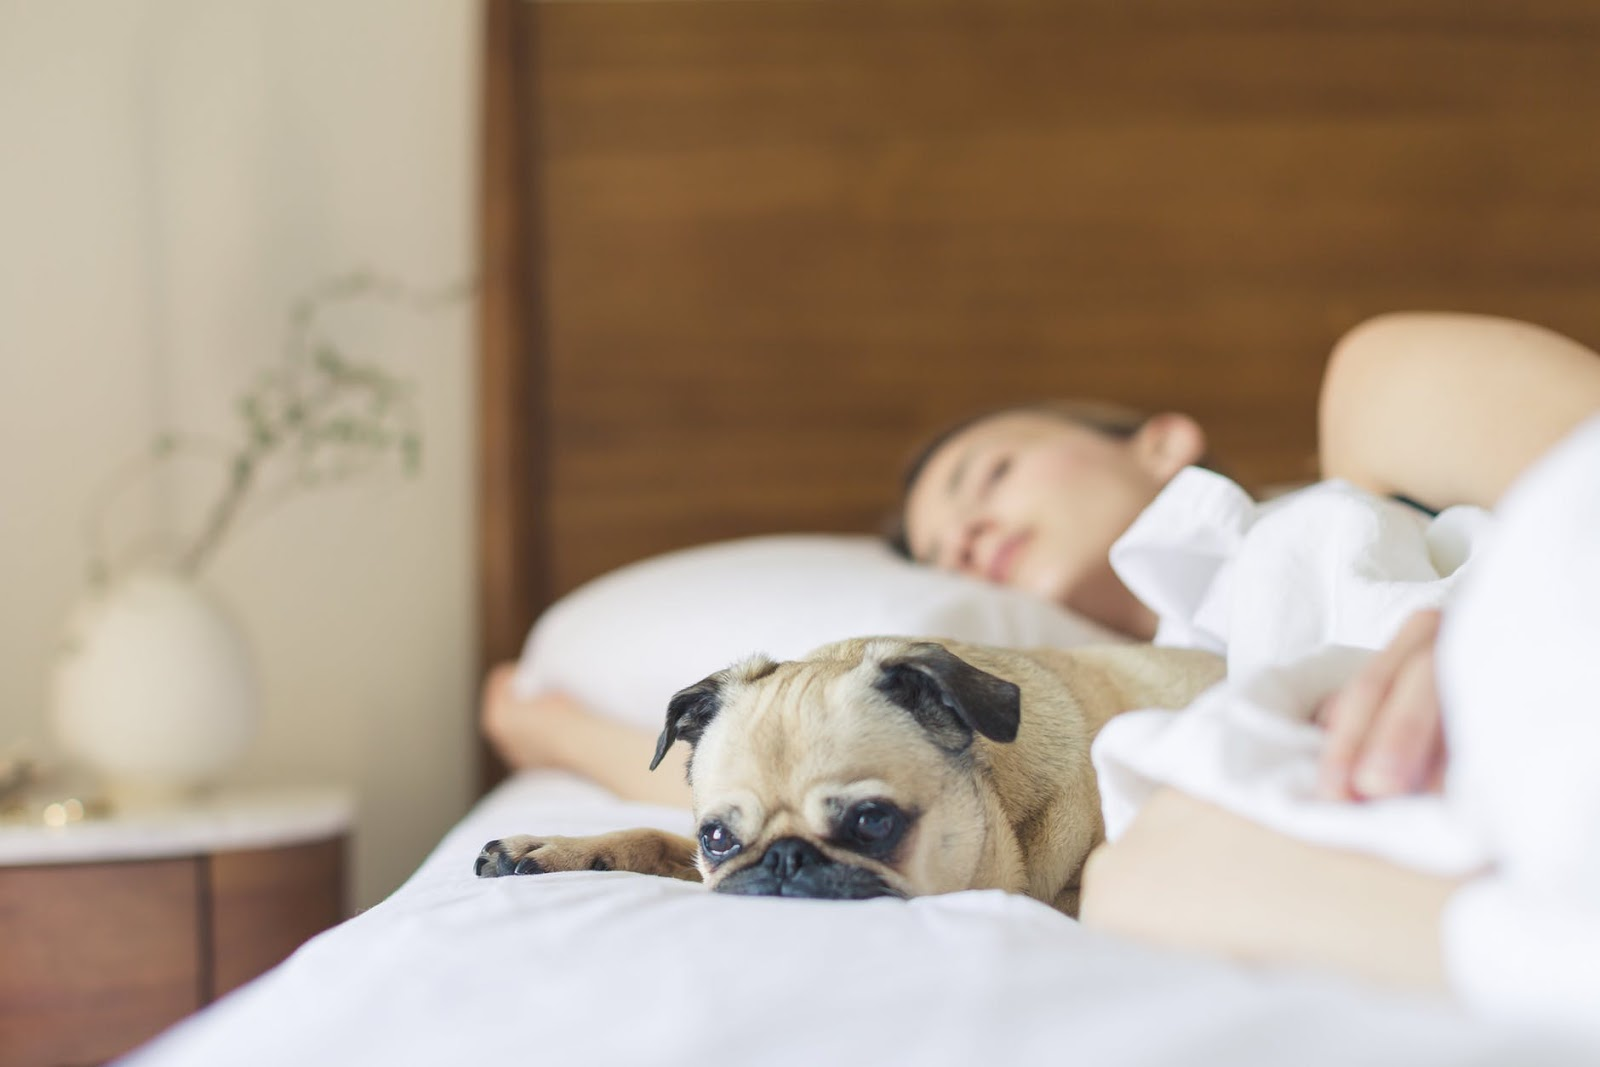 woman asleep on a bed next to her dog